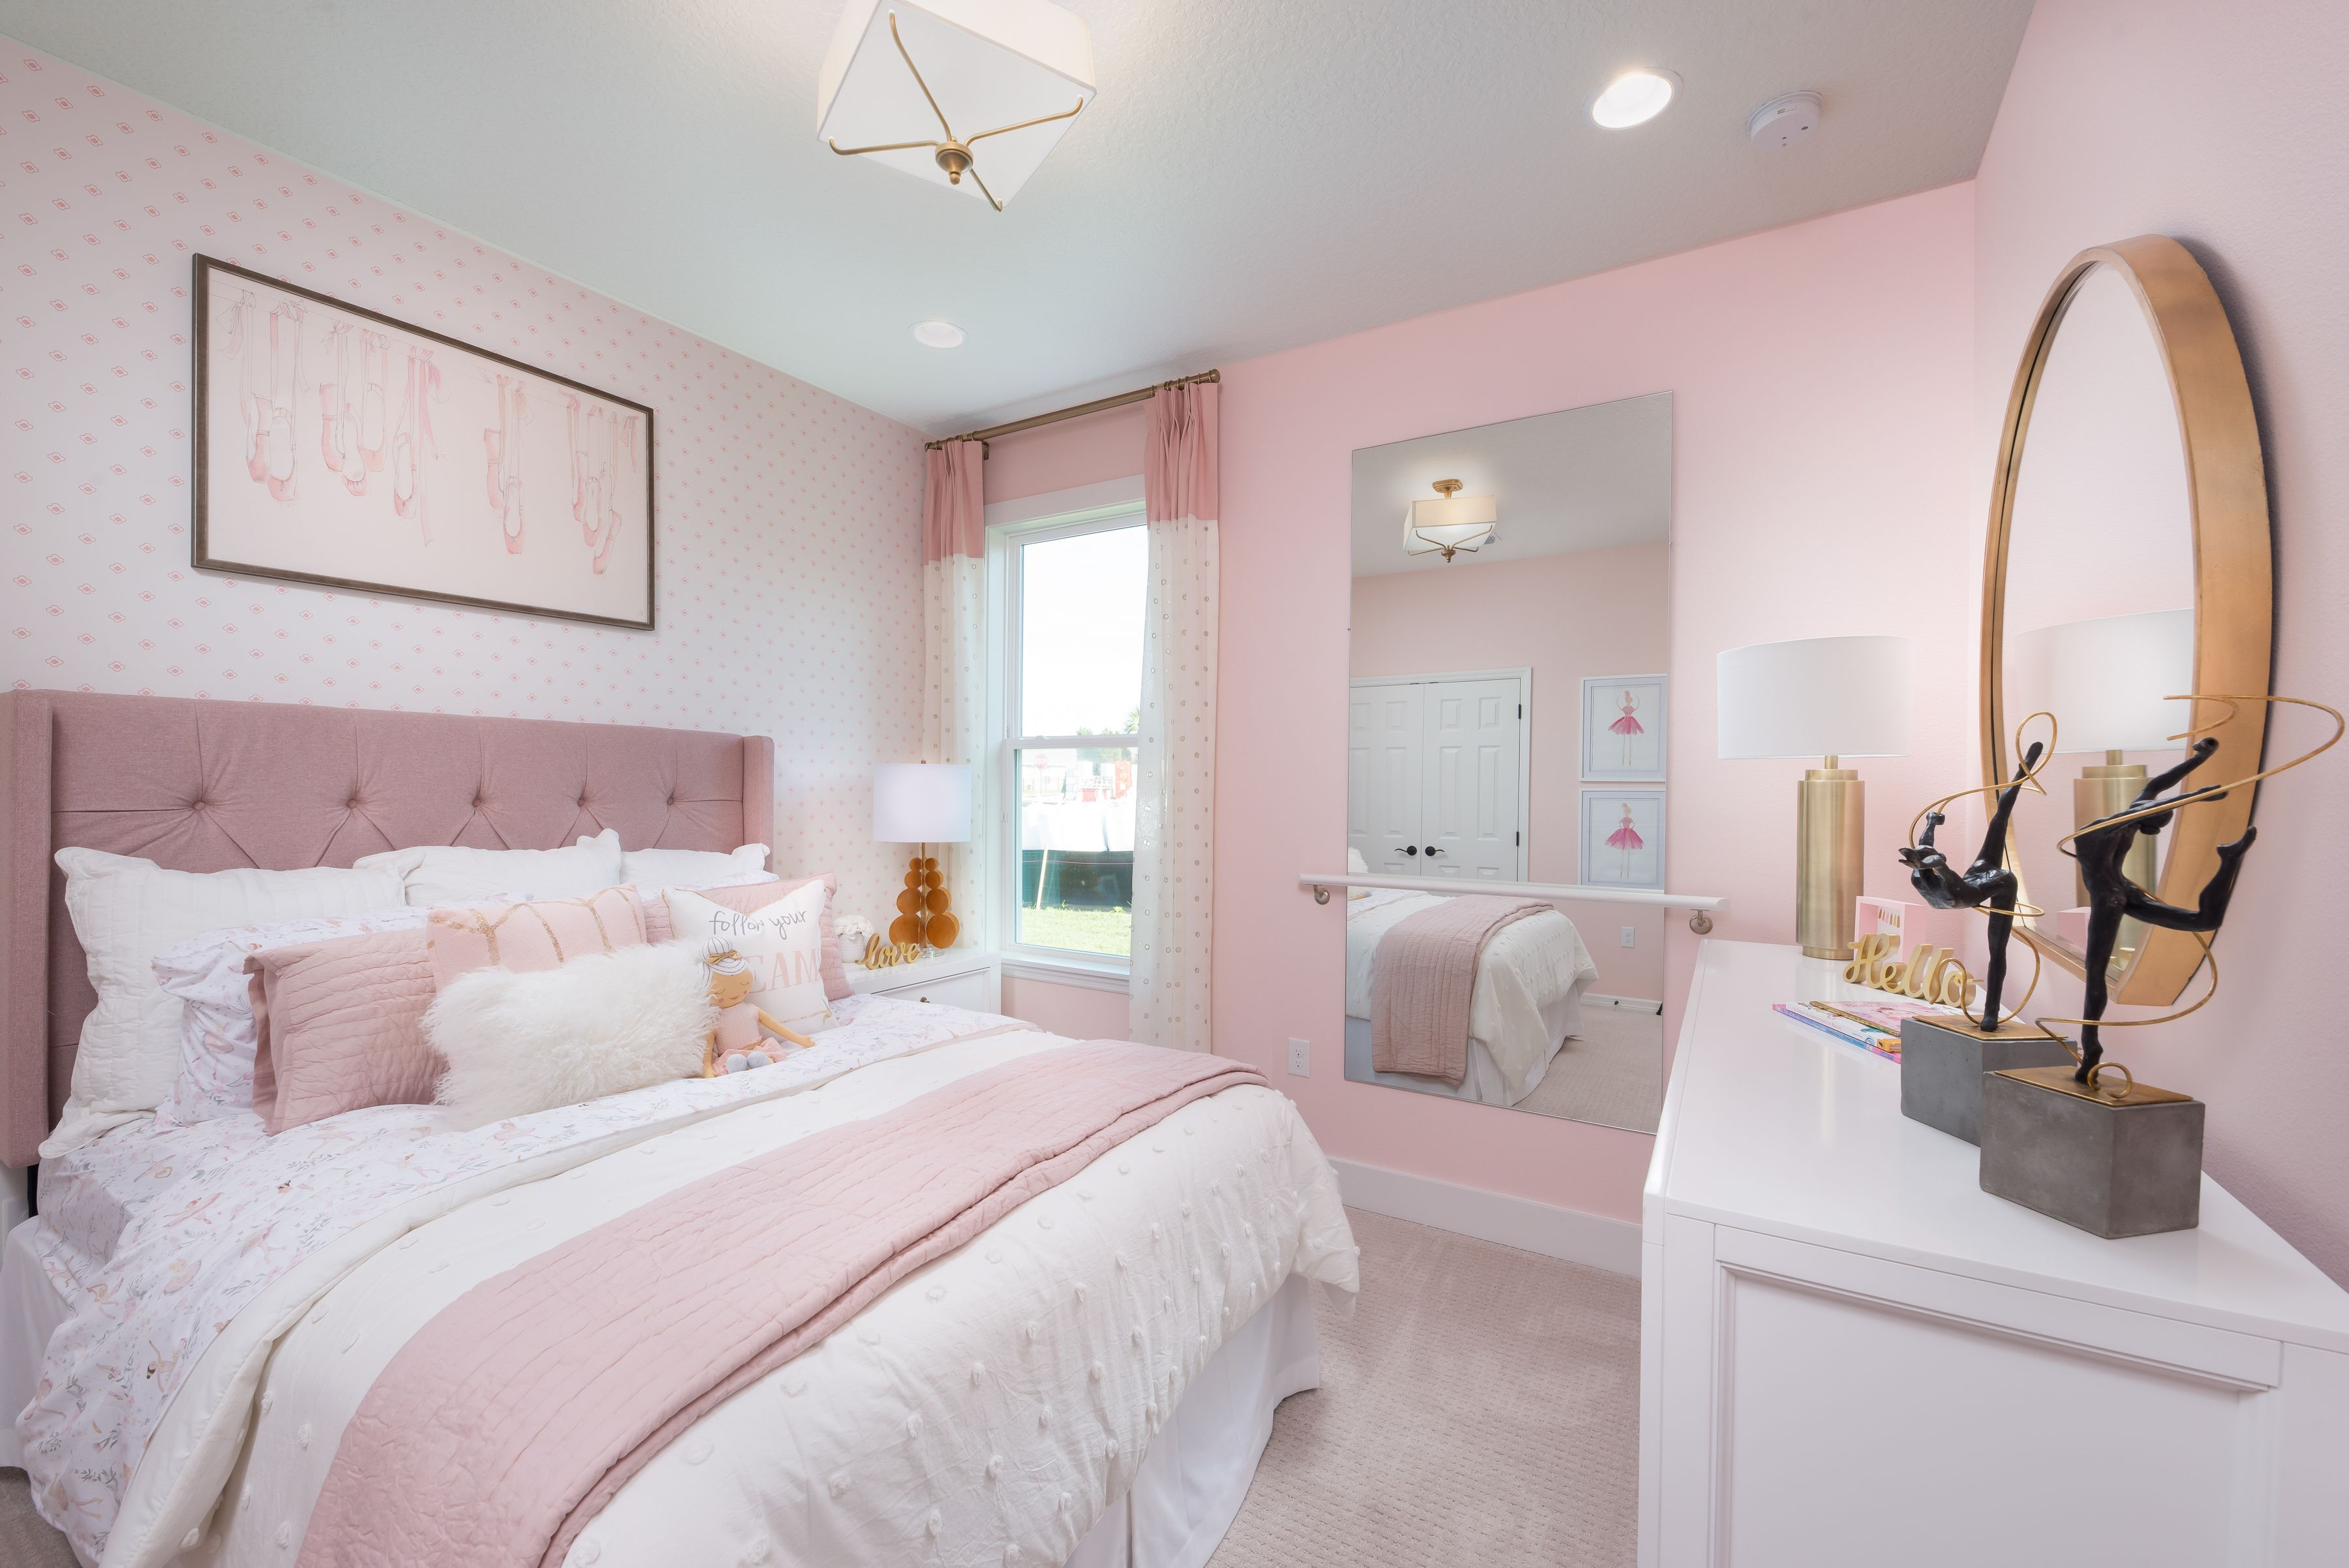 Bedroom featured in the Antigua By Taylor Morrison in Orlando, FL